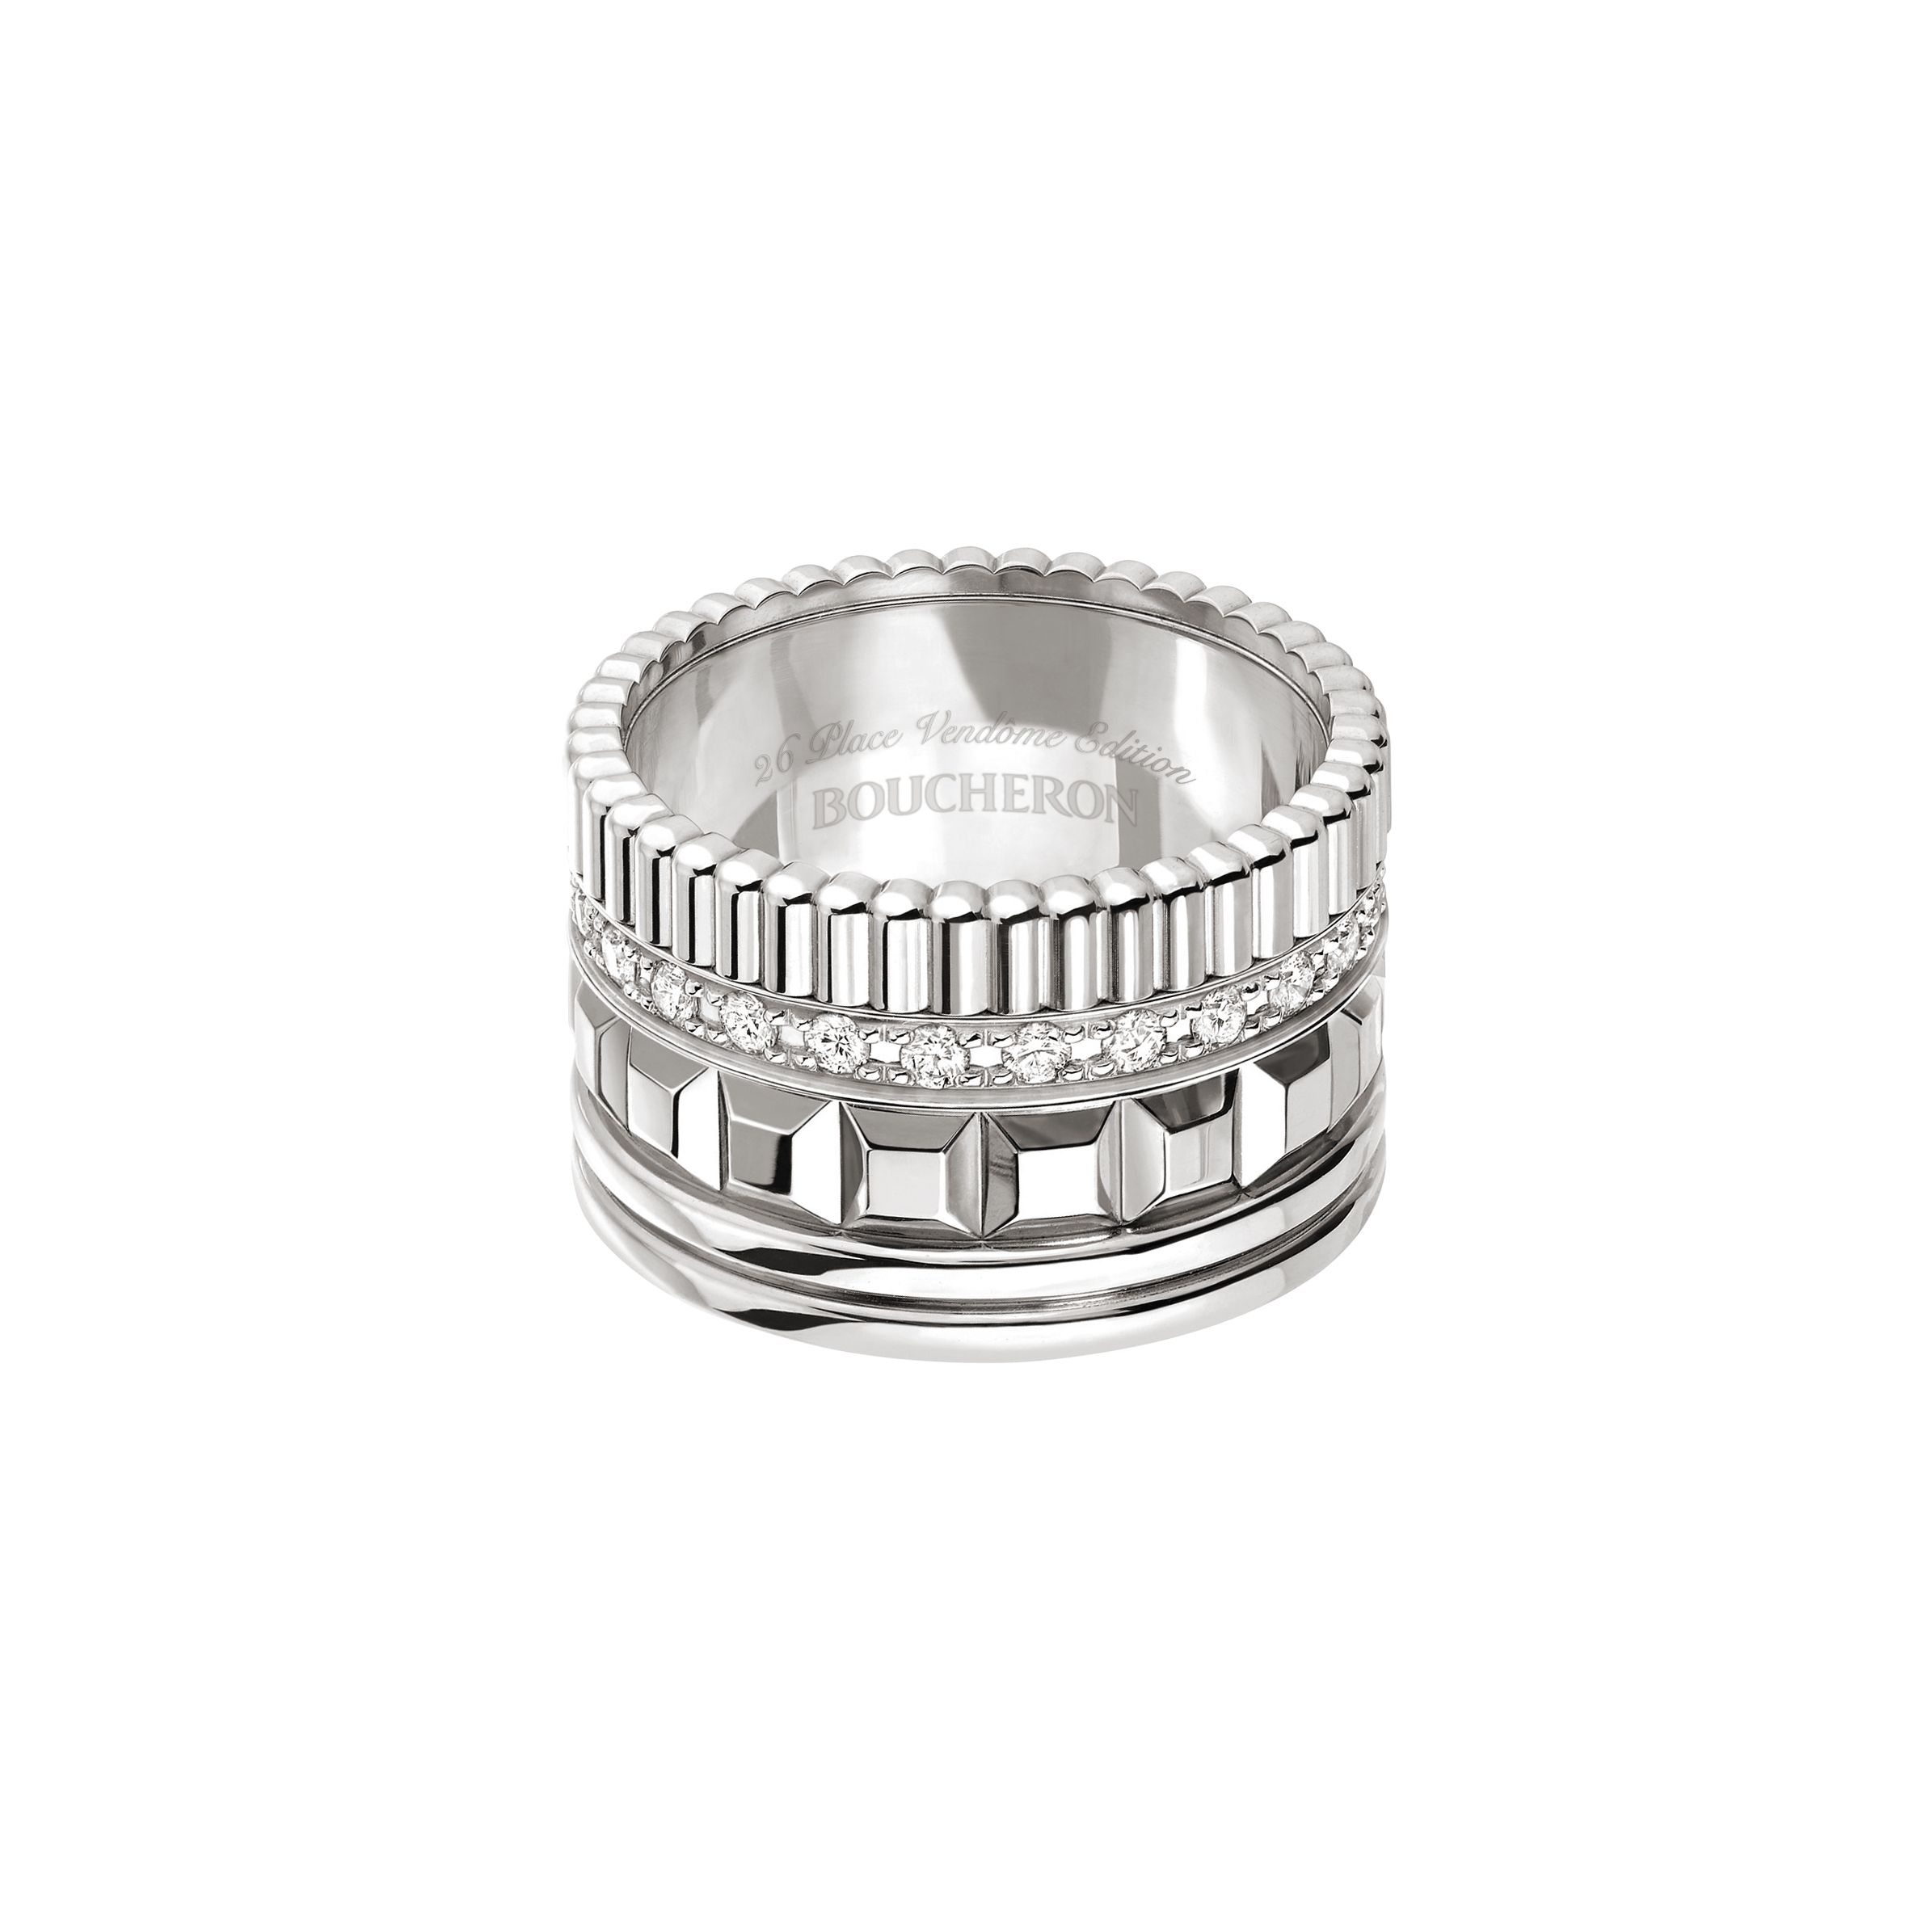 Boucheron 'Quatre Radiant Edition' ring in white gold. Limited Edition. $13,900